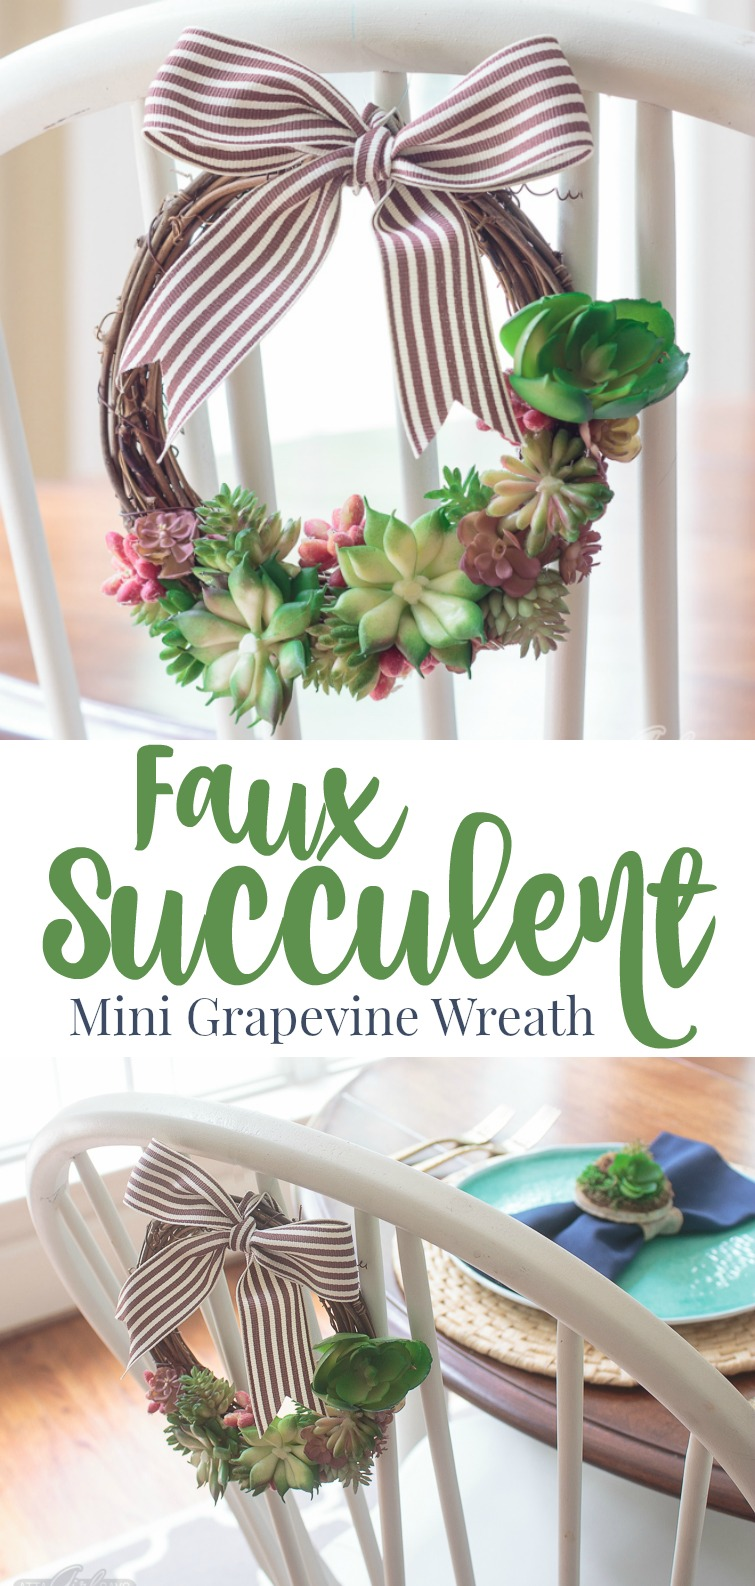 A collage photo titled Faux Succulent Mini Grapevine wreath showing a closeup of a grapevine succulent wreath tied to the back of a white Windsor chair. The second photo shows a wider shot of the same chair with a table place setting visible in the background.